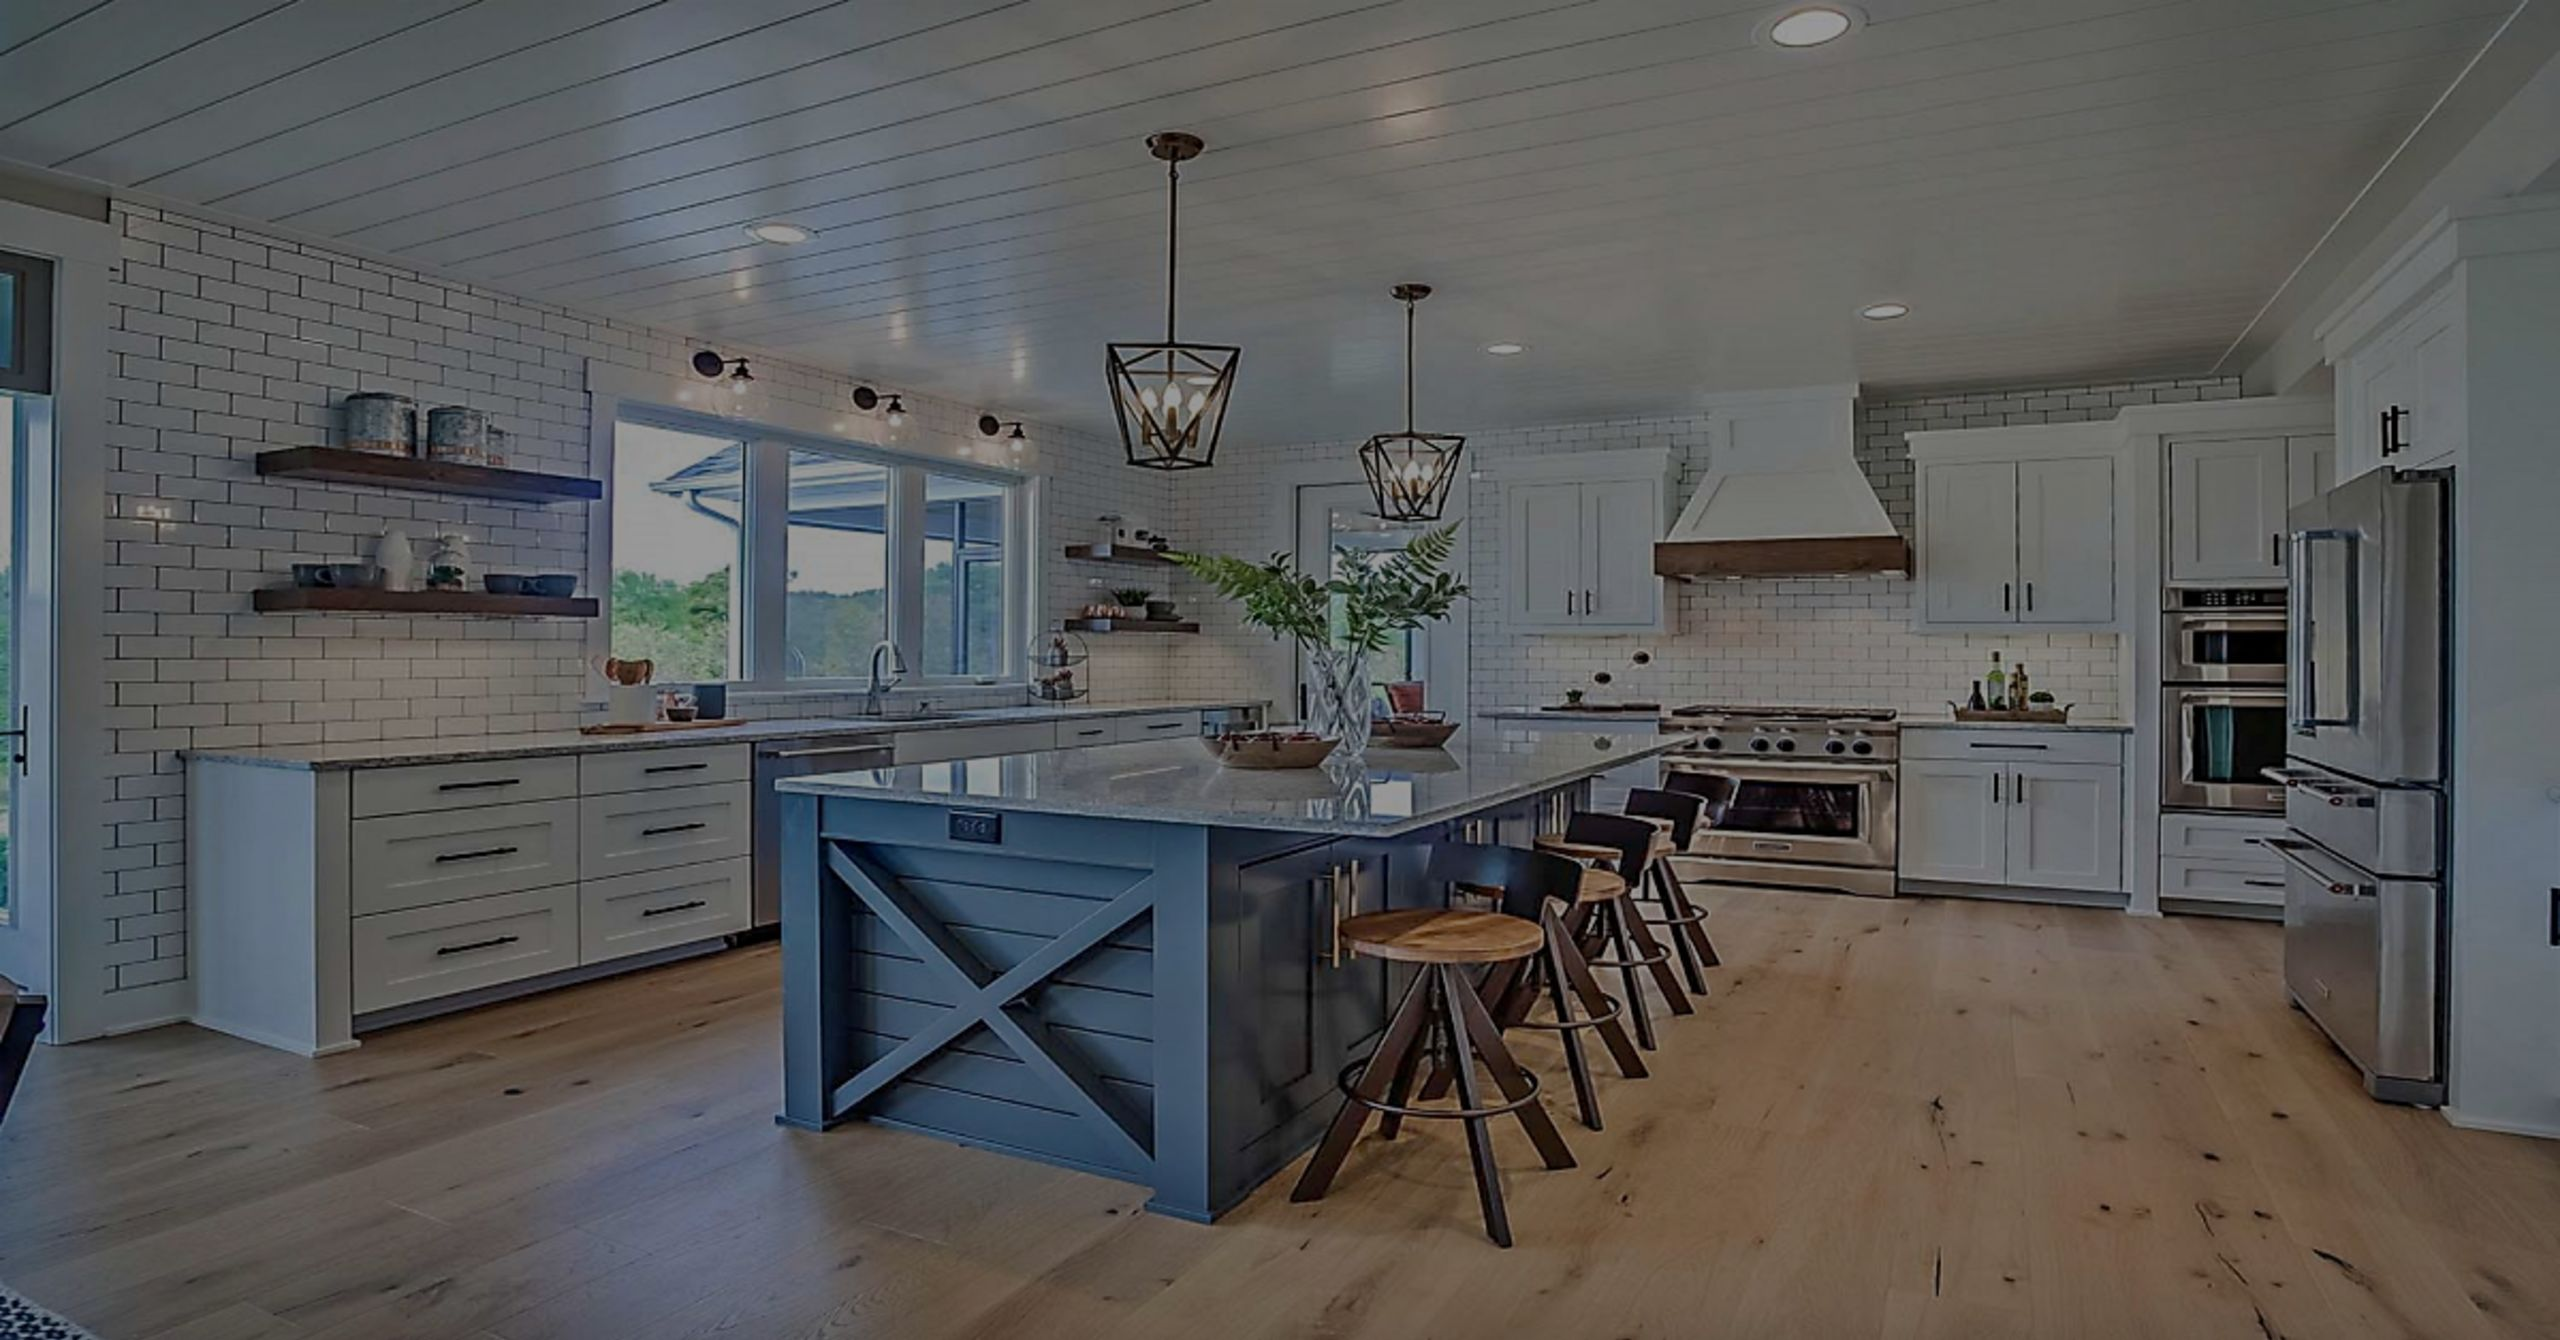 Make the Most of Your Kitchen Space!